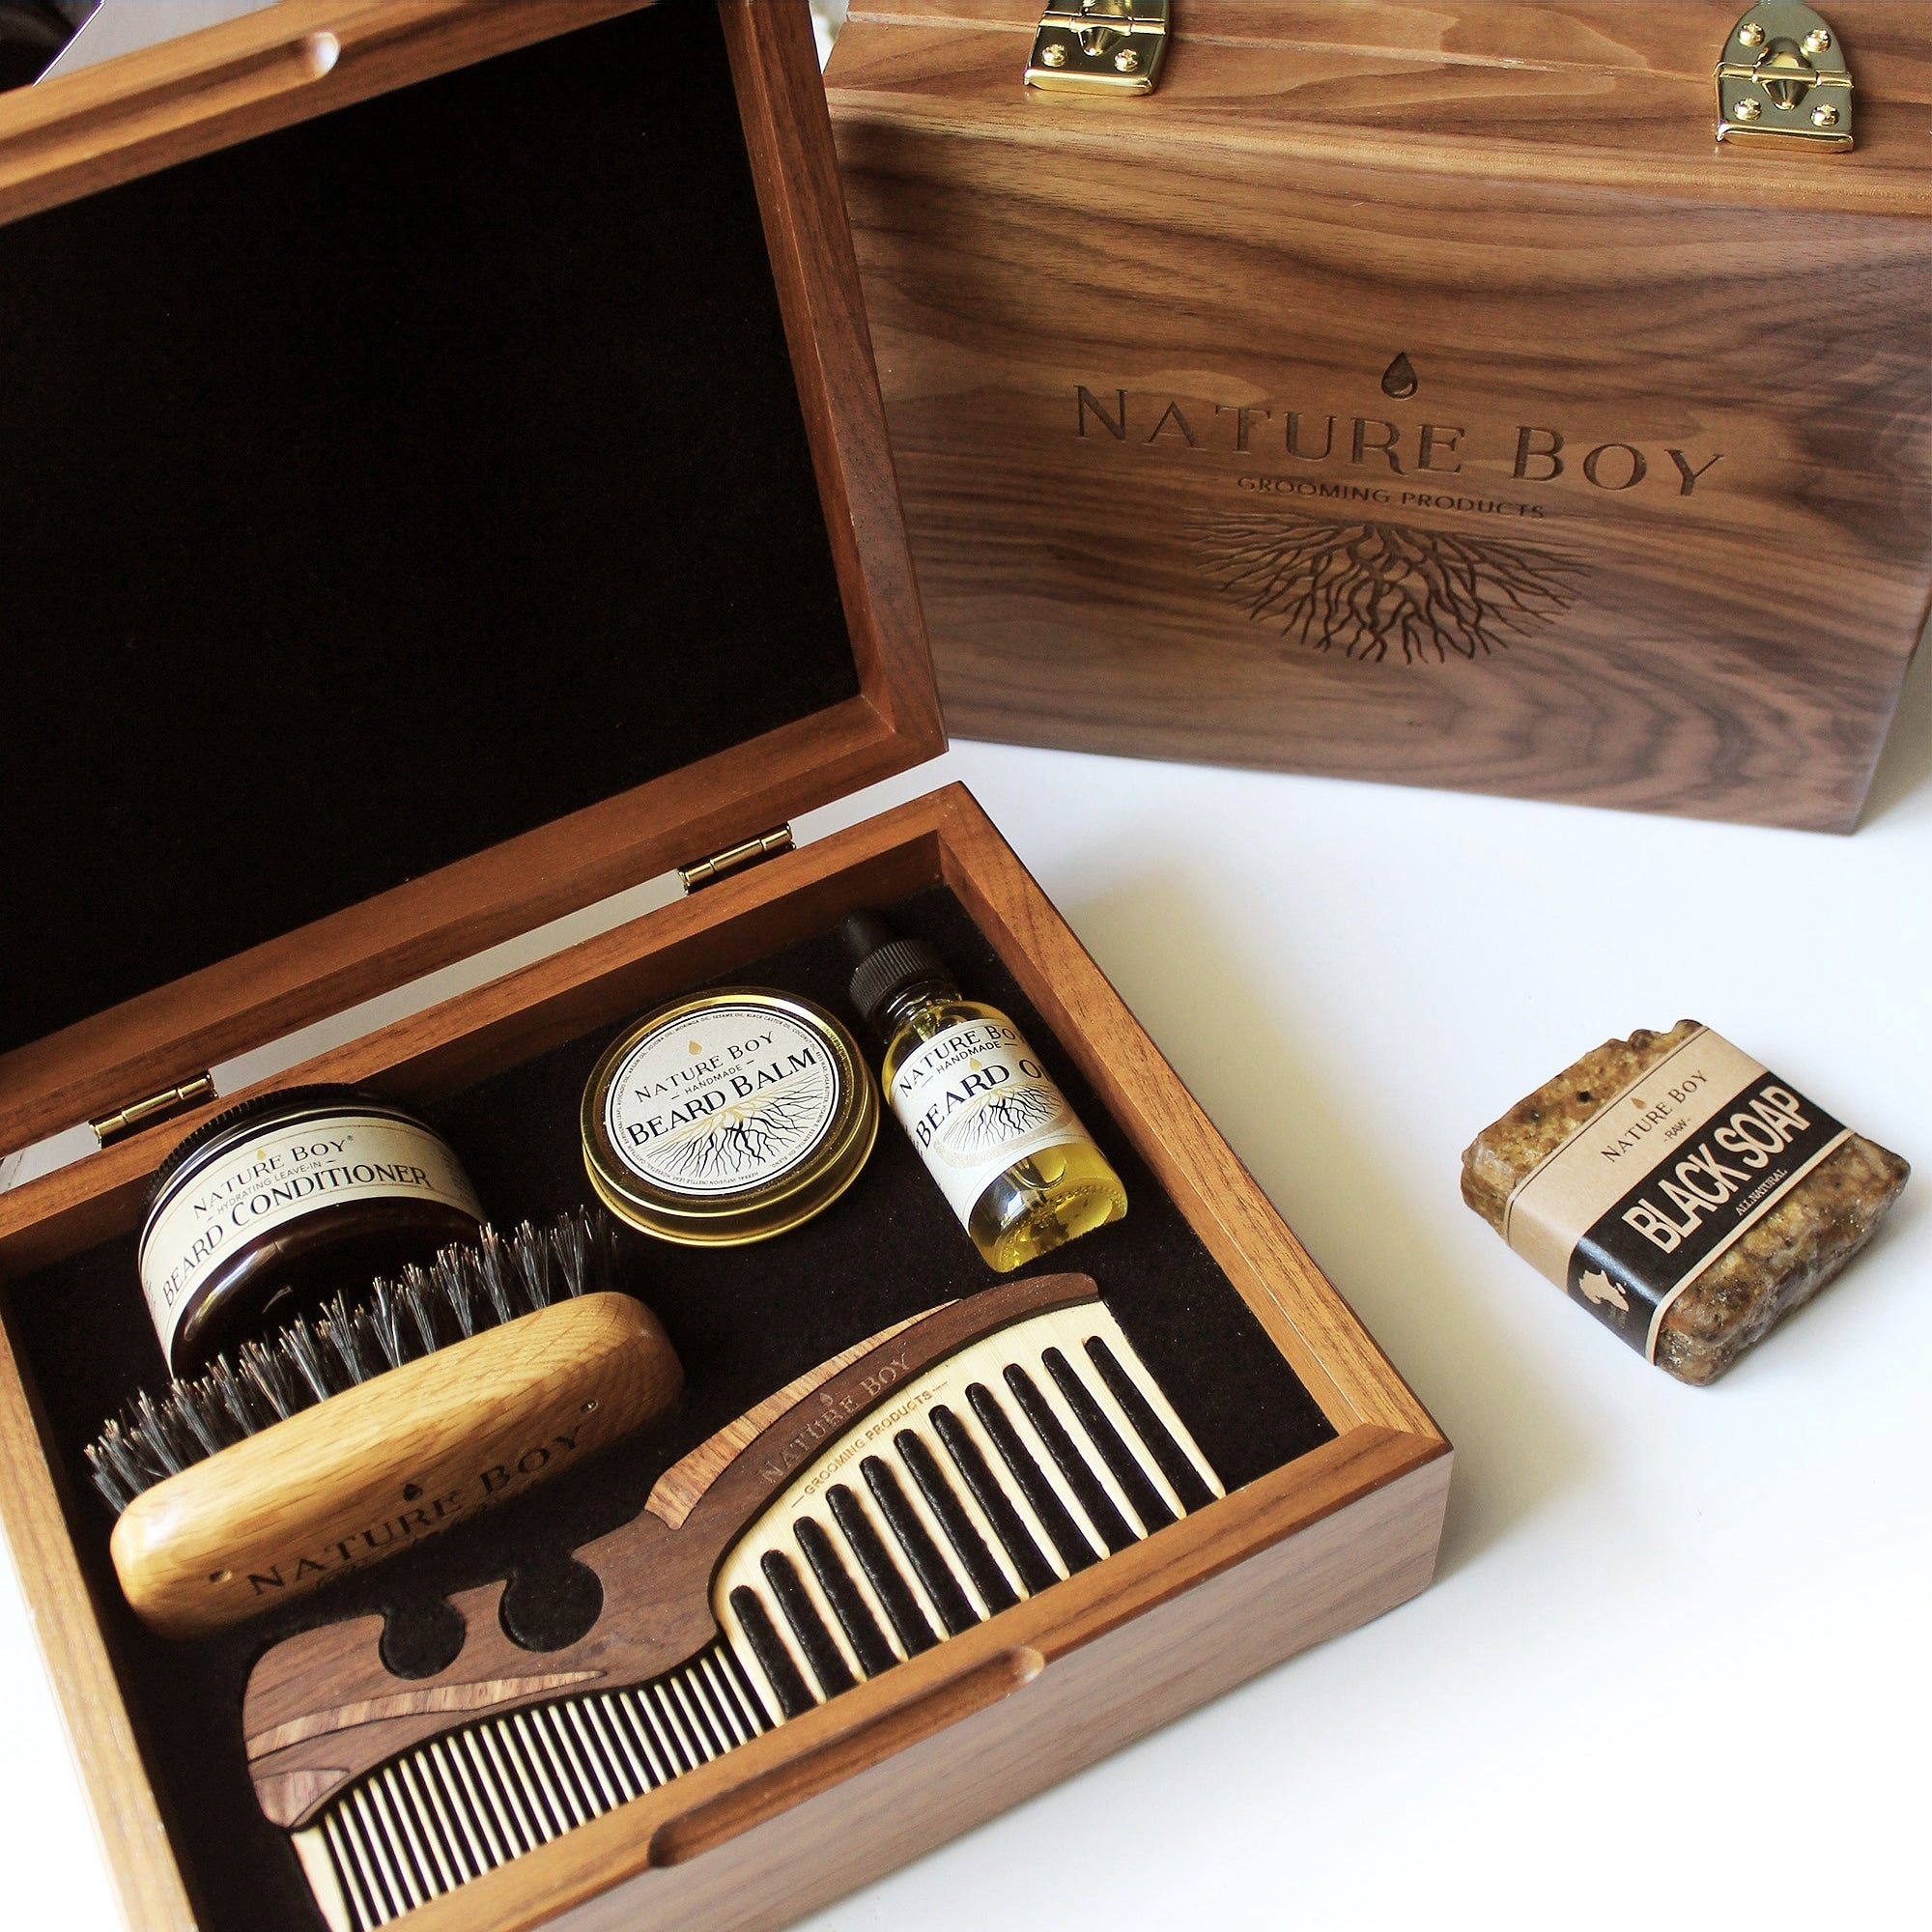 NATURE BOY Deluxe Beard Kit w/ Connoisseur's Grooming Box